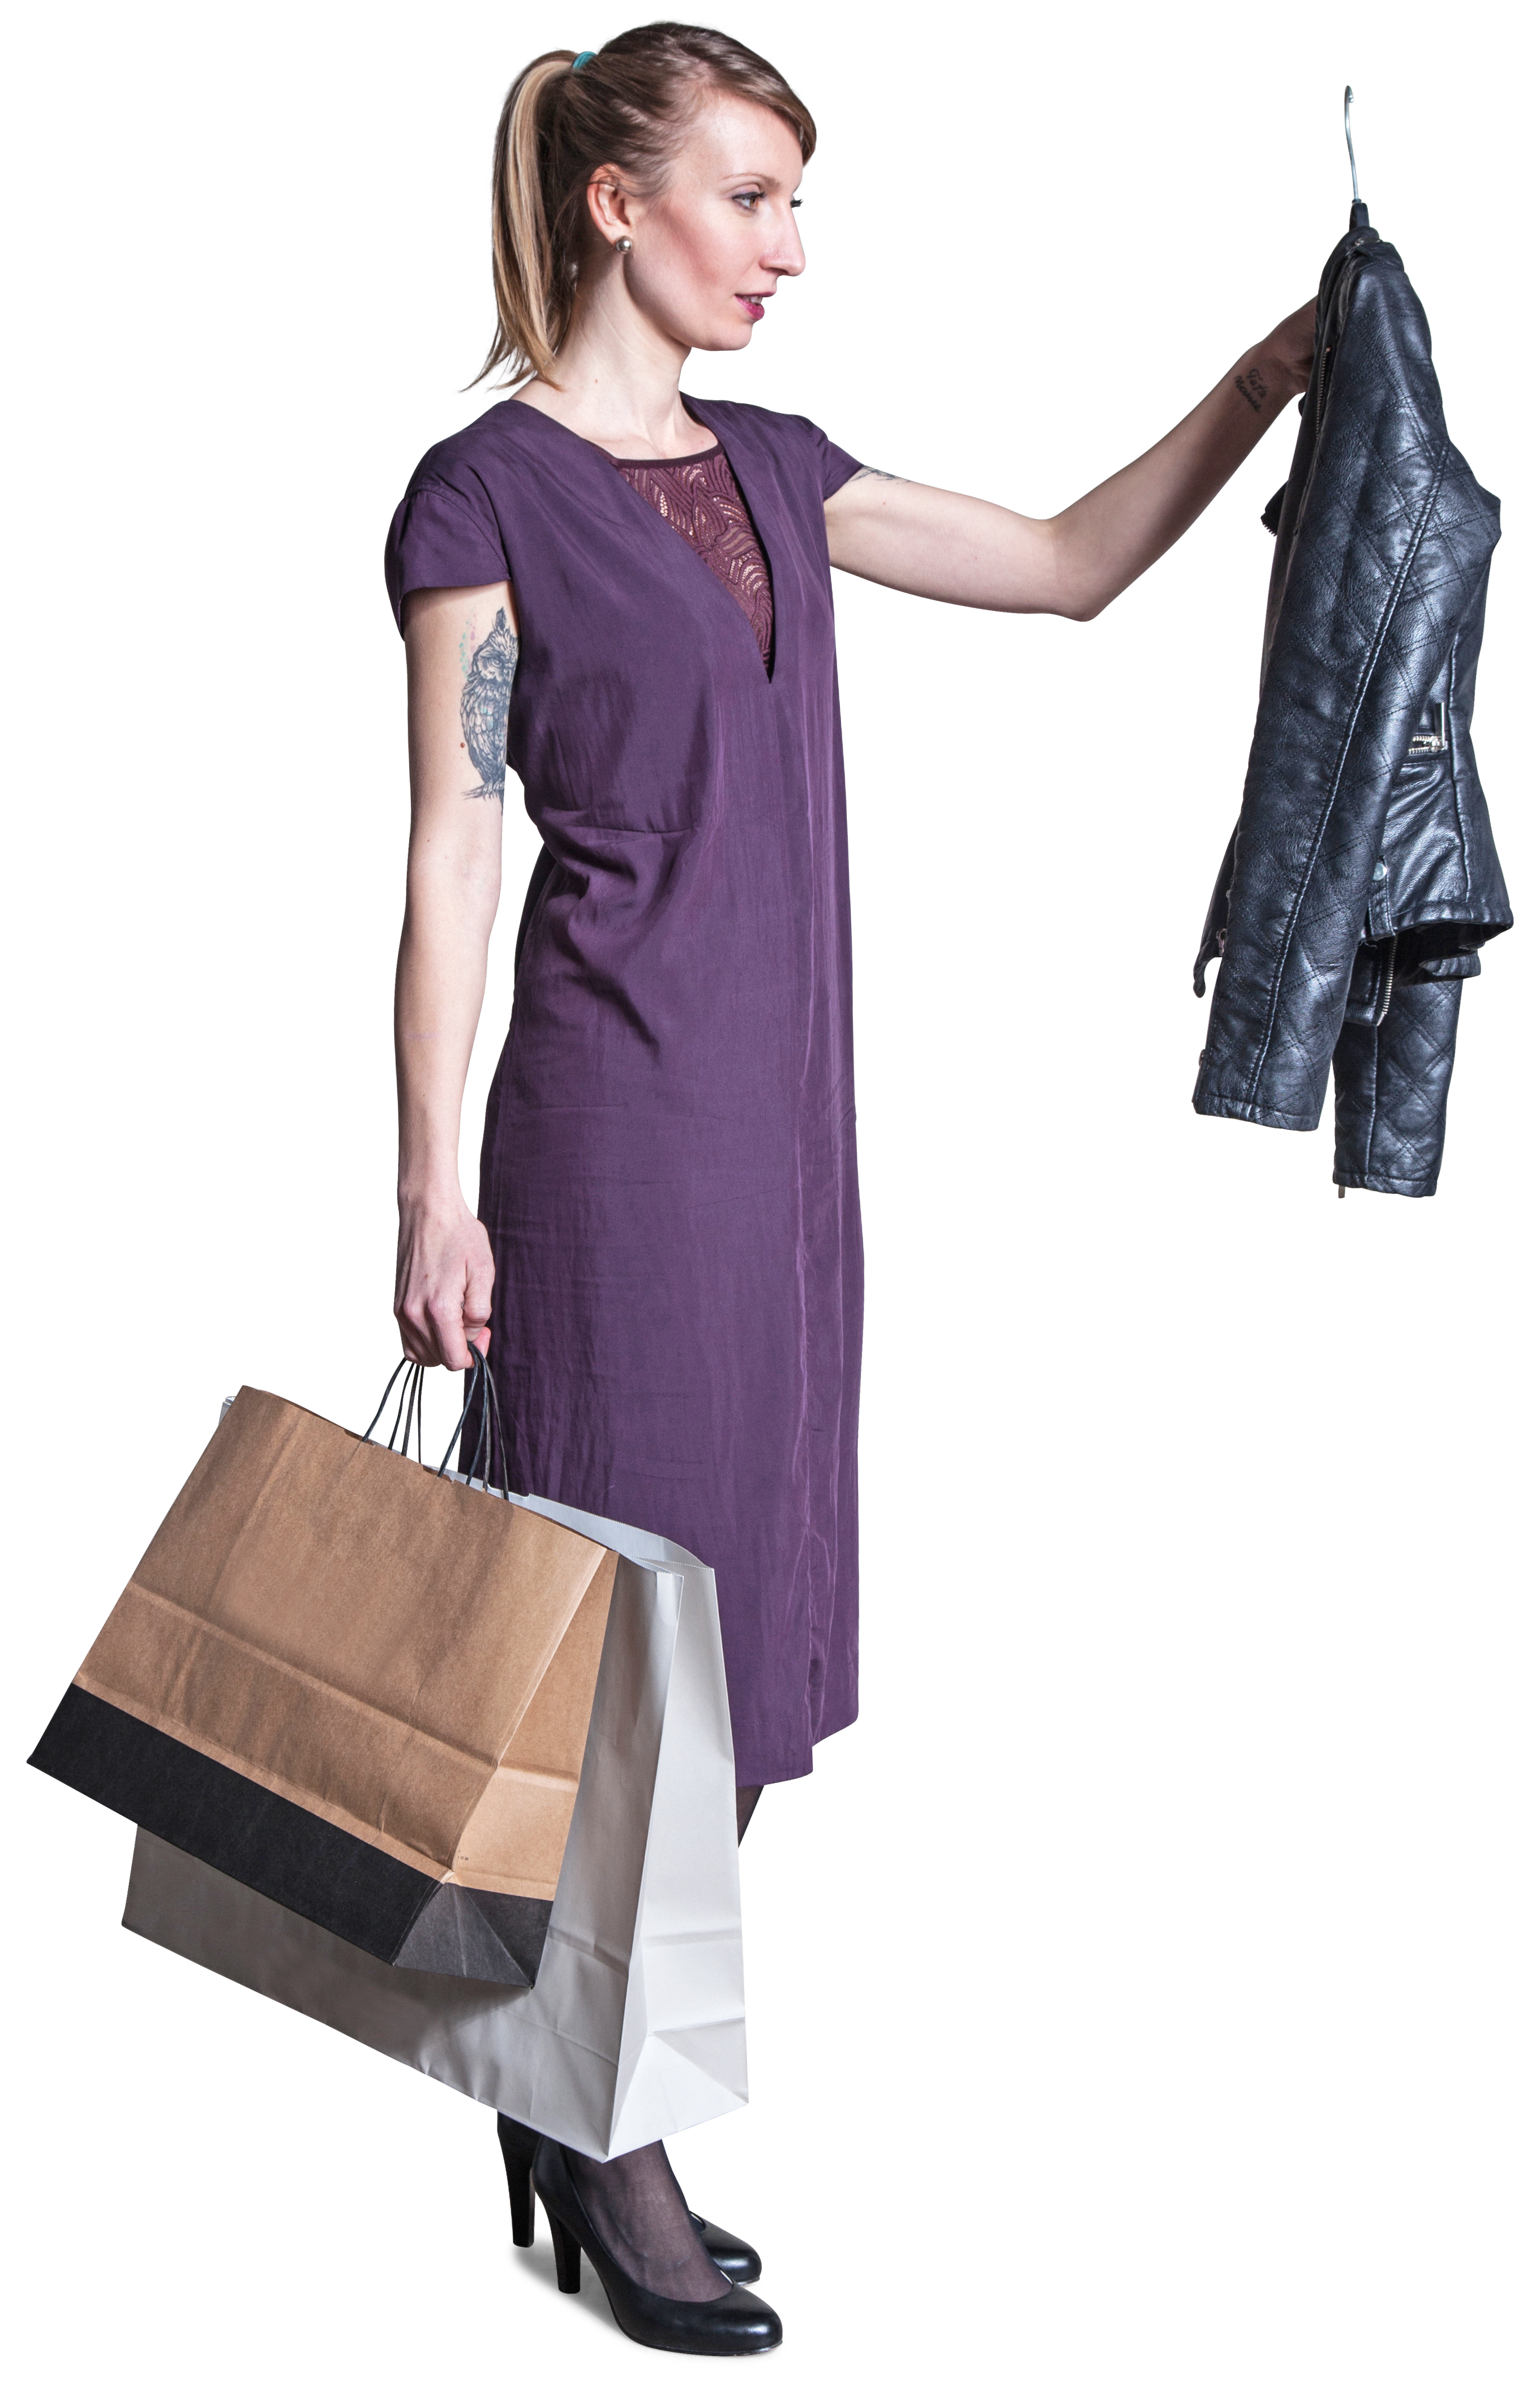 Shopping People Png Fashion Dresses People Png